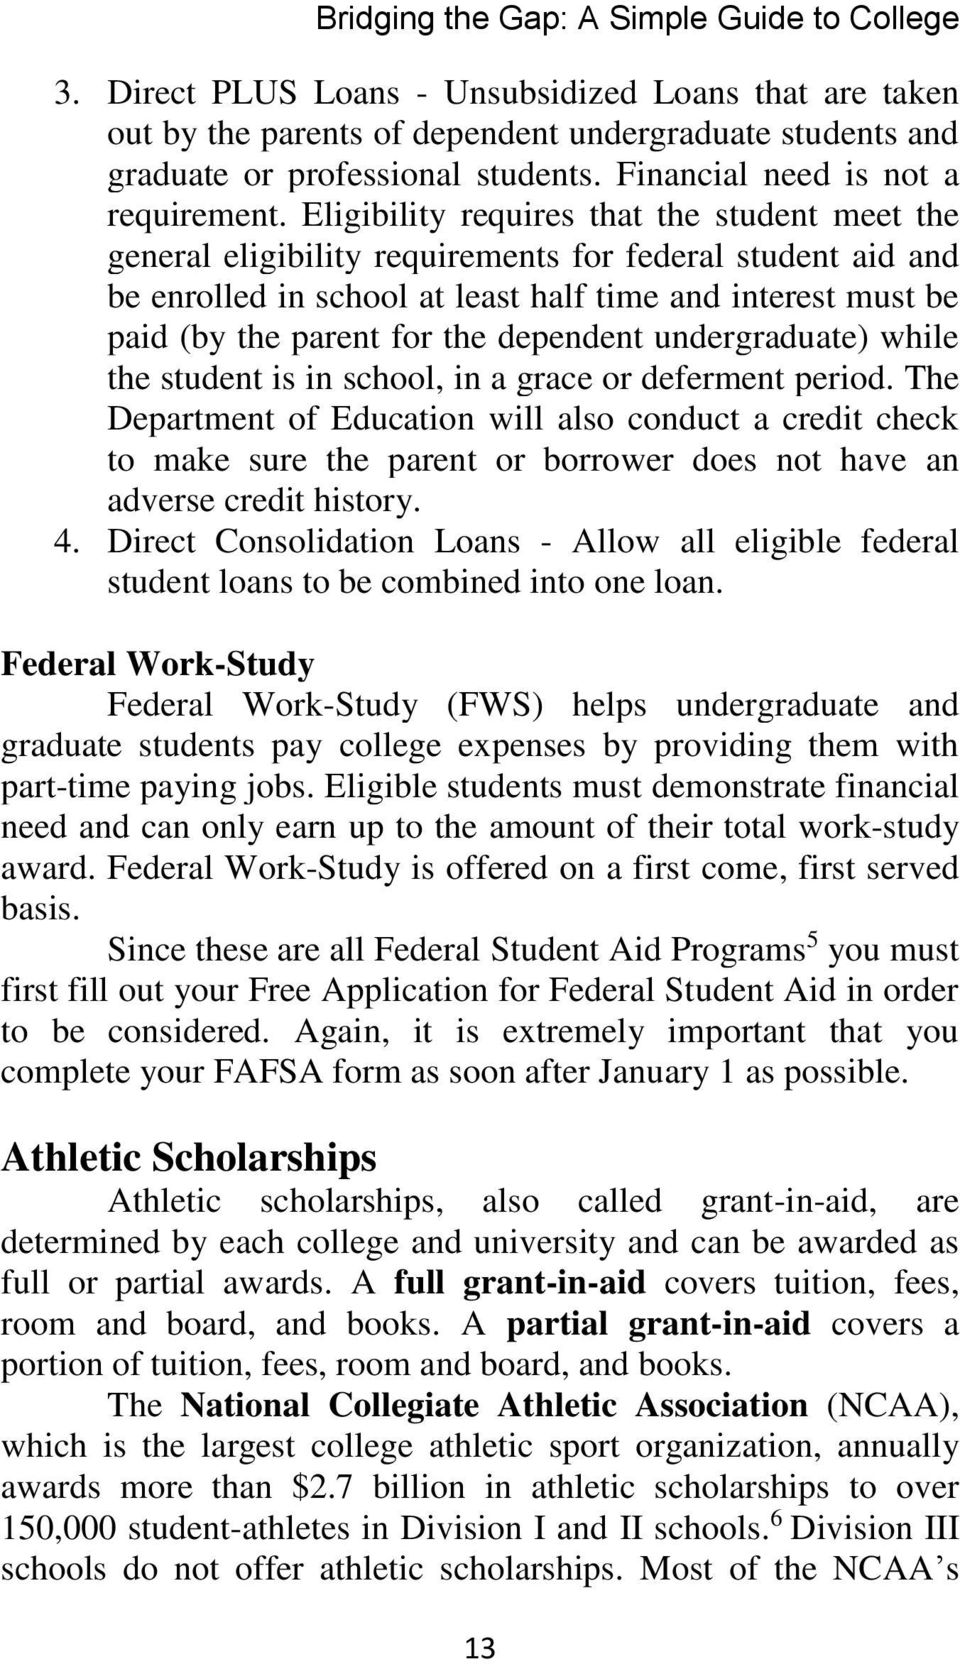 Eligibility requires that the student meet the general eligibility requirements for federal student aid and be enrolled in school at least half time and interest must be paid (by the parent for the